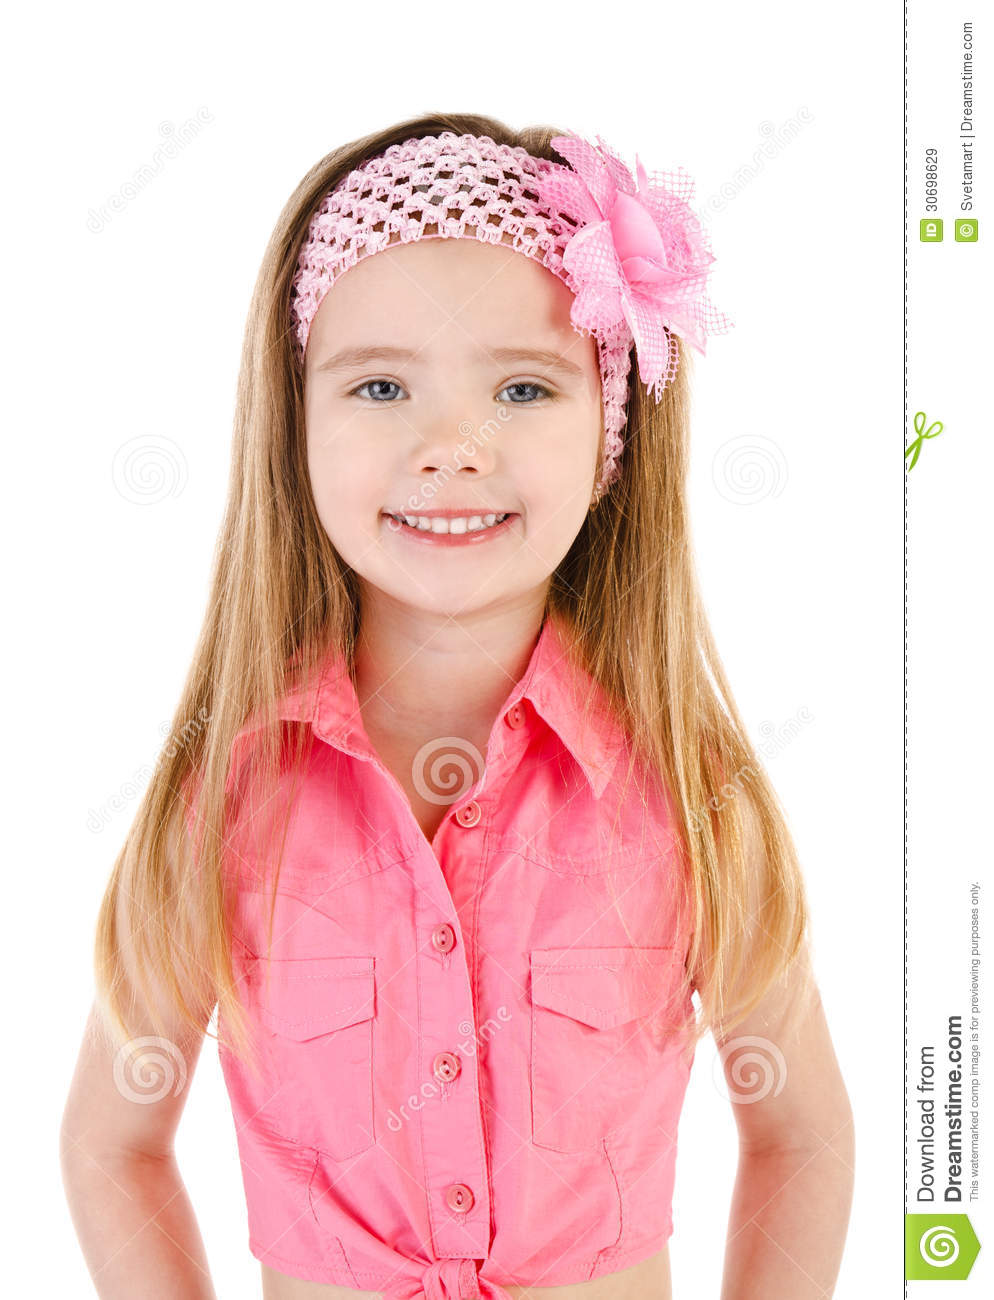 Portrait Of Smiling Cute Little Girl Isolated Royalty Free Stock ...